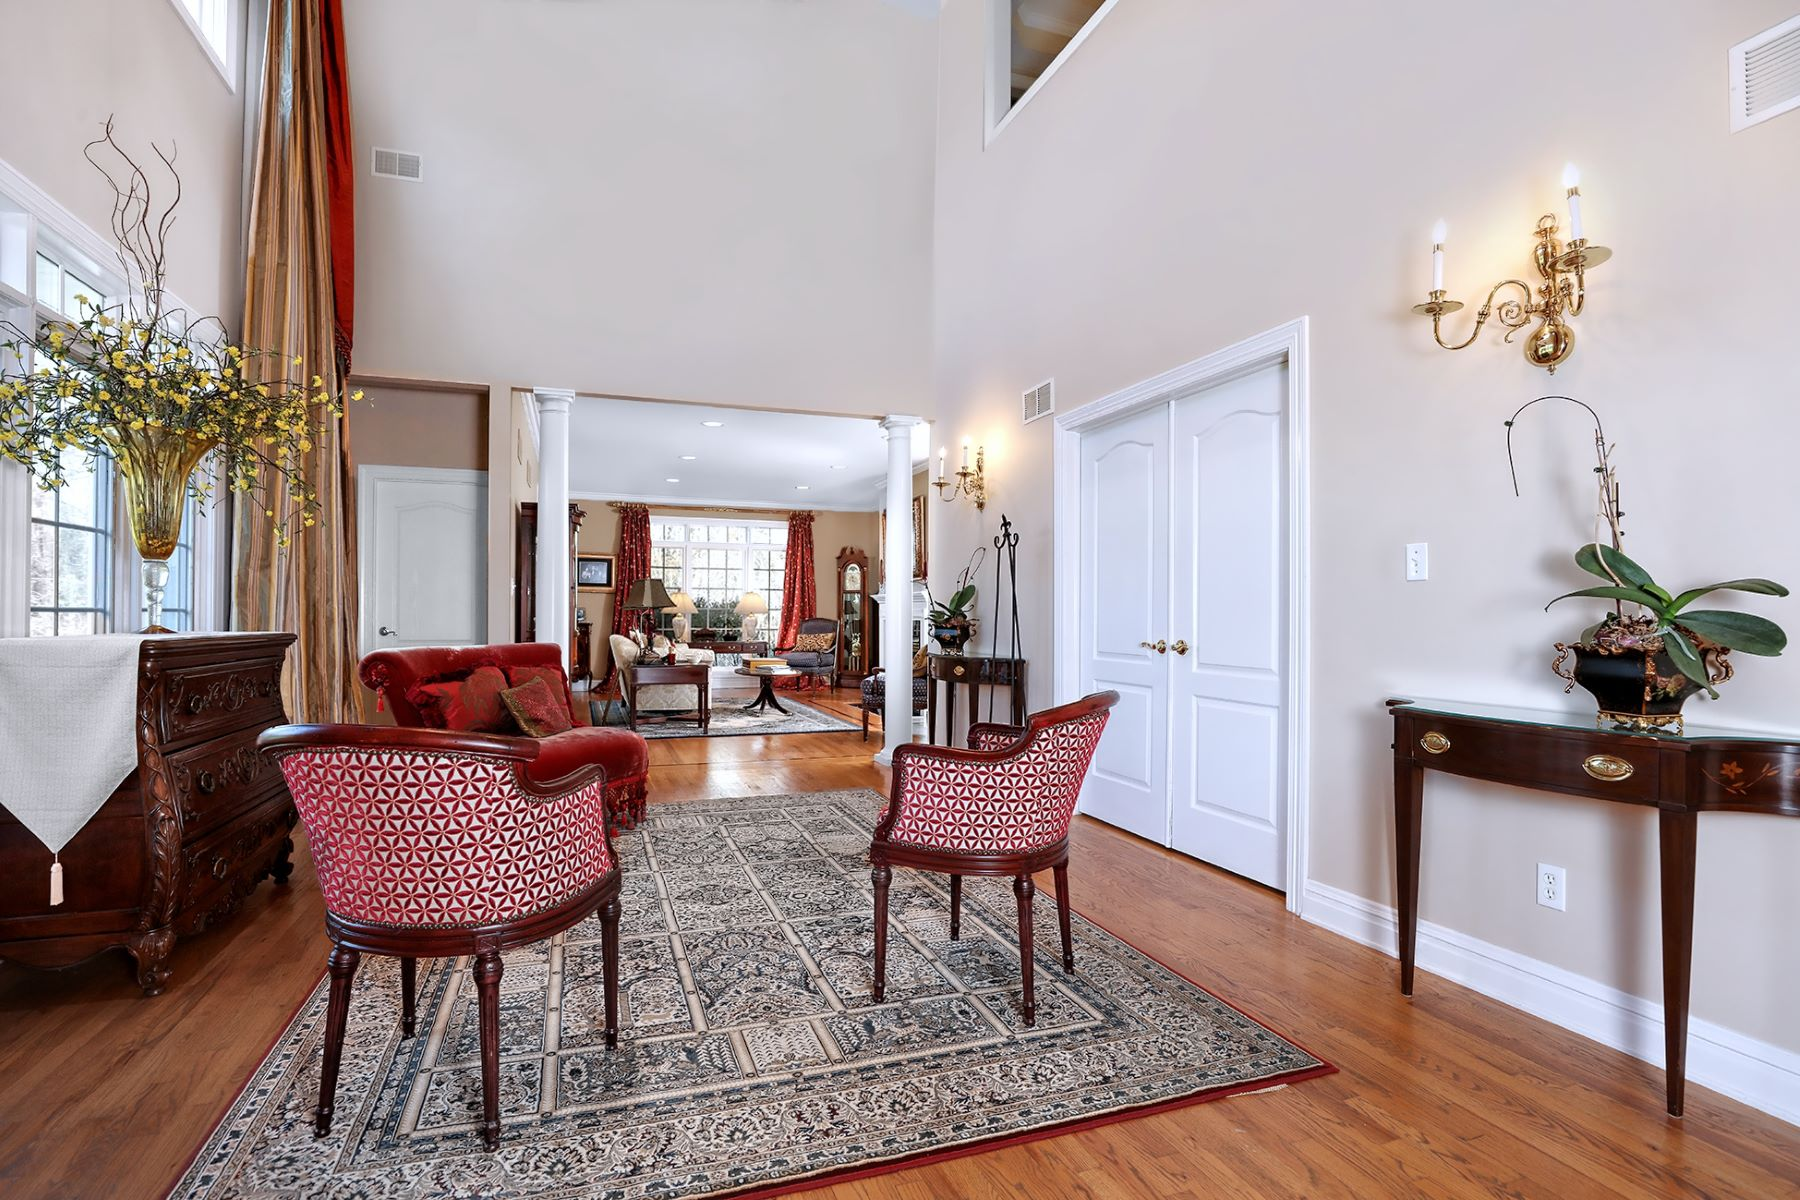 Additional photo for property listing at Welcome To This Oasis Of Beautiful Living! 7 Coach Lane, Lambertville, New Jersey 08530 United States